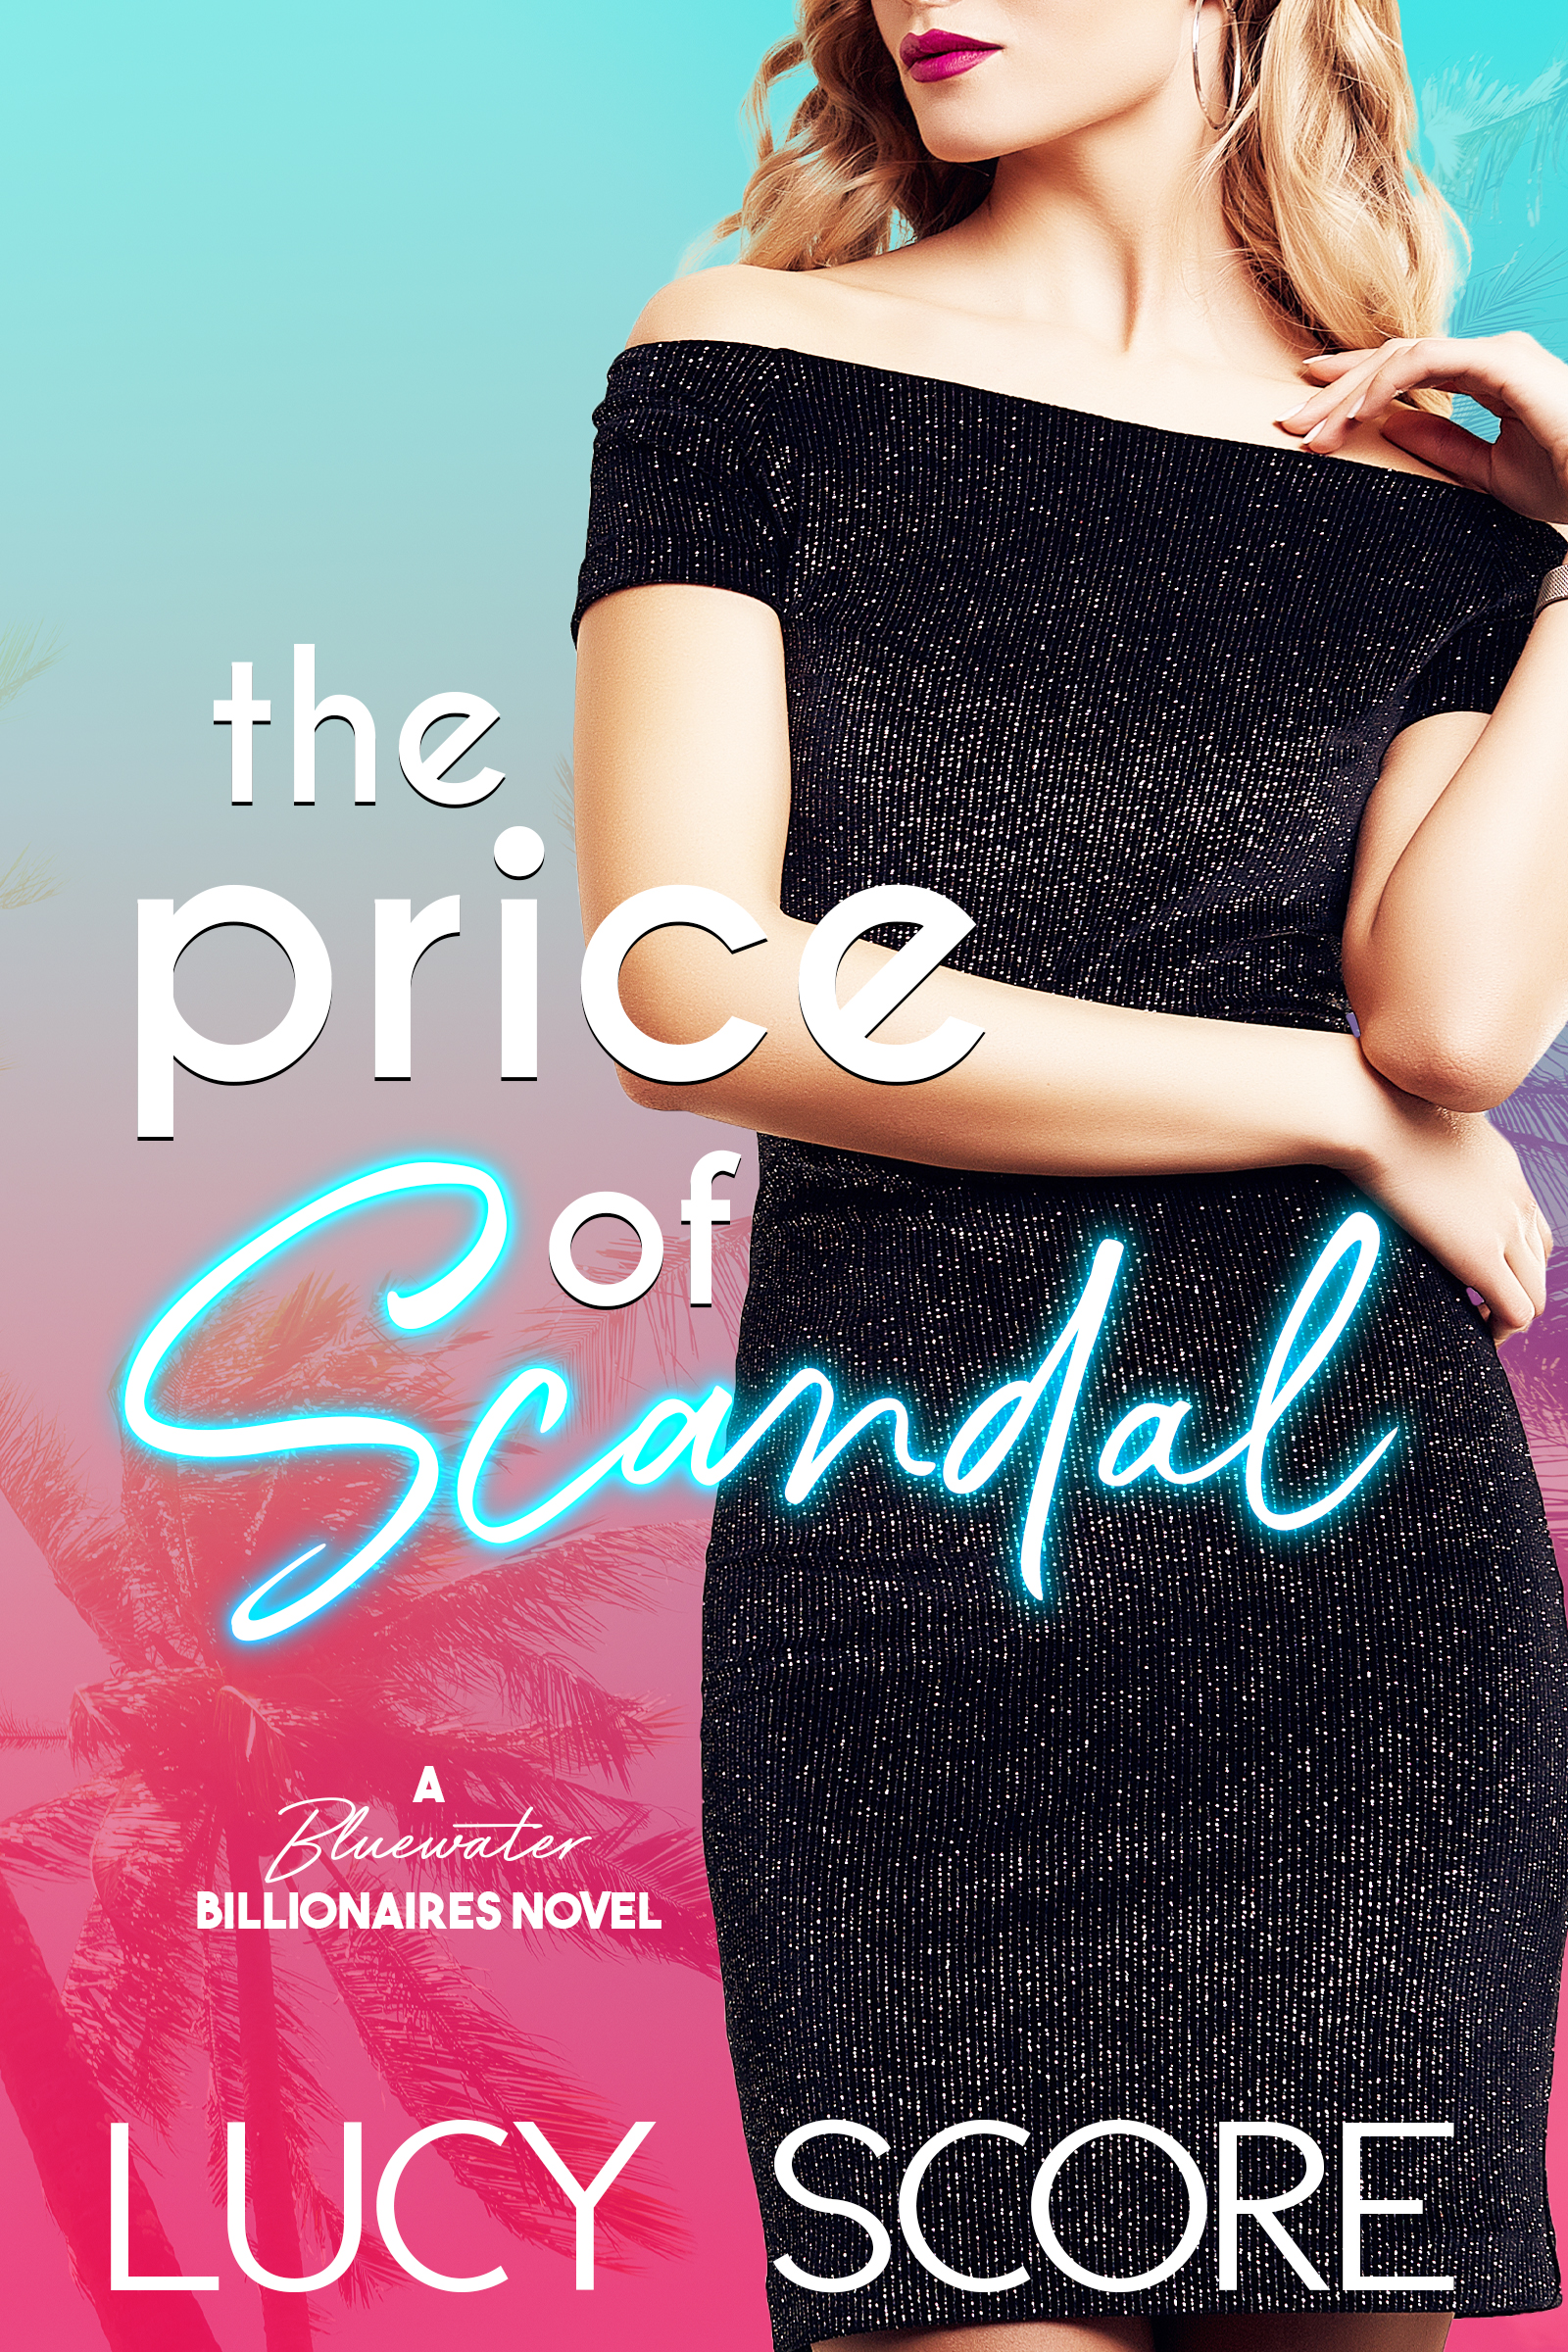 Exclusive Excerpt: The Price of Scandal